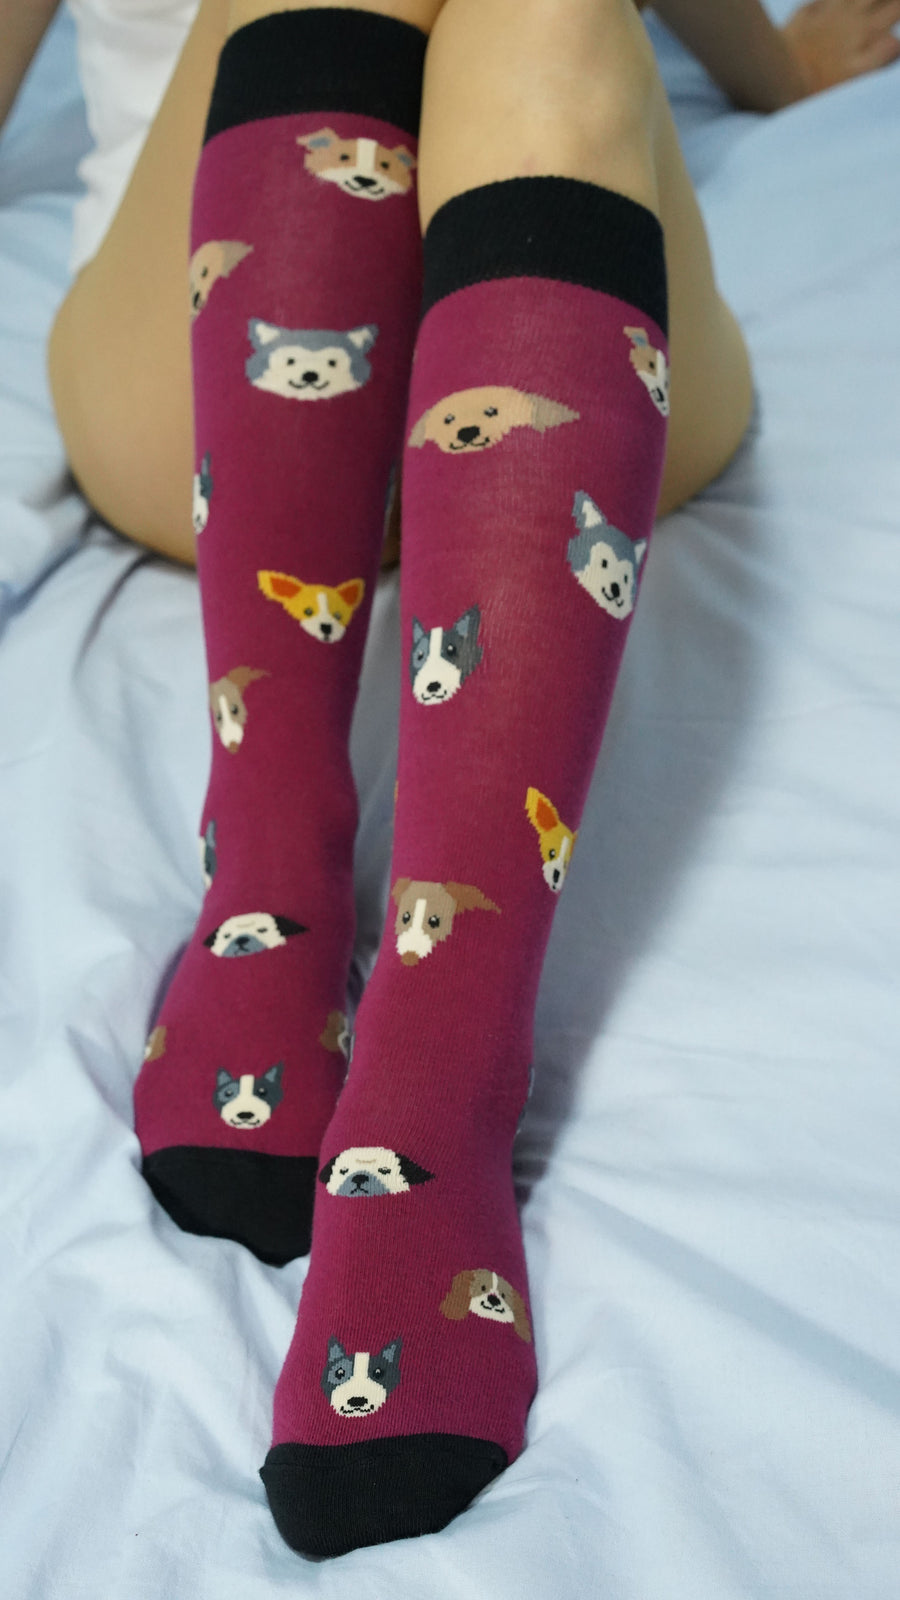 Women's Cute Dogs Knee High Socks